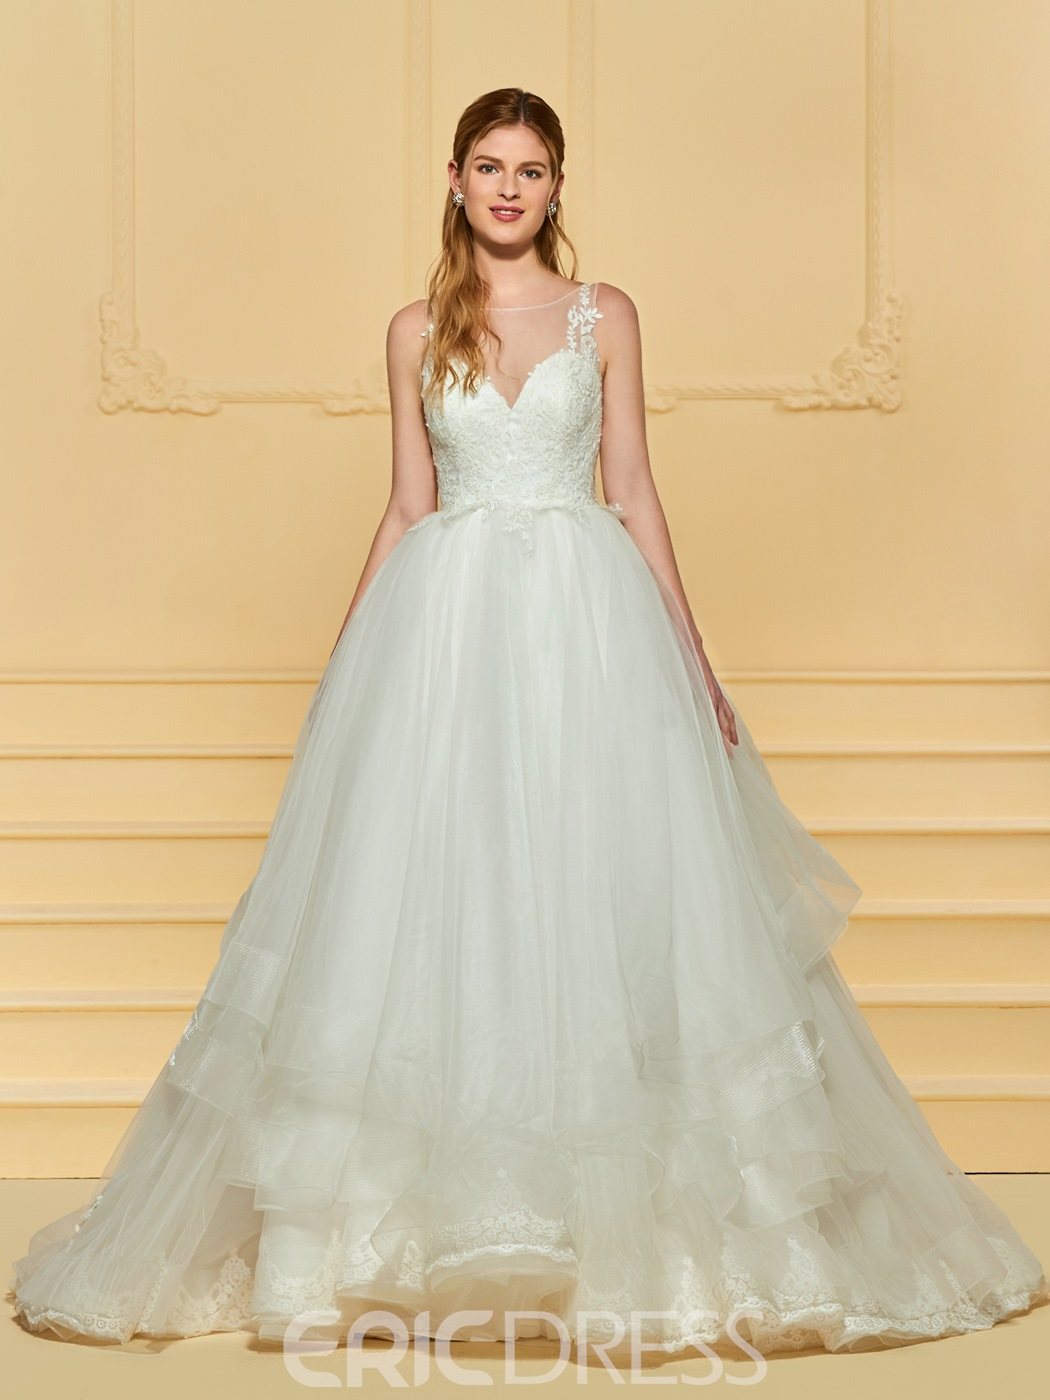 Ericdress Scoop Ball Gown Tulle Wedding Dress 13172387 - Ericdress.com